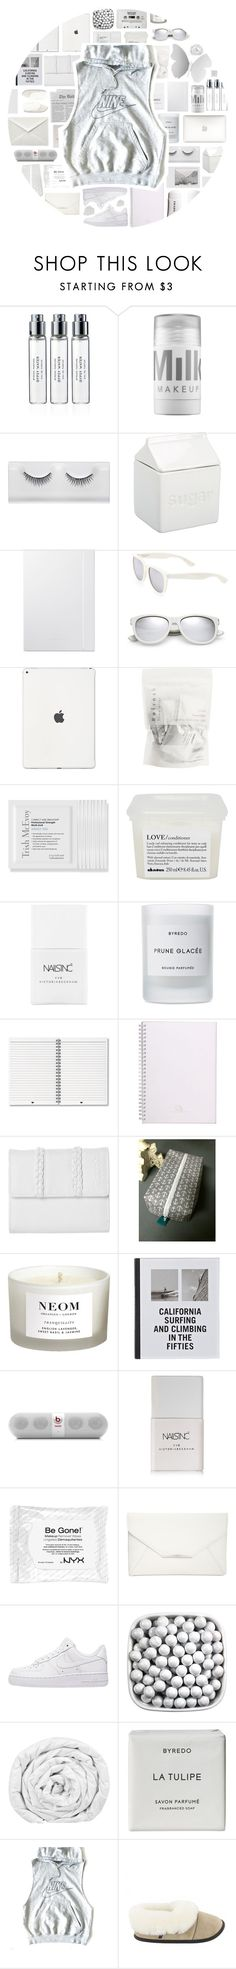 """""""Nike"""" by stelbell ❤ liked on Polyvore featuring Byredo, MILK MAKEUP, BIA Cordon Bleu, Yves Saint Laurent, Polaroid, CASSETTE, Trish McEvoy, Davines, Nails Inc. and Bench"""